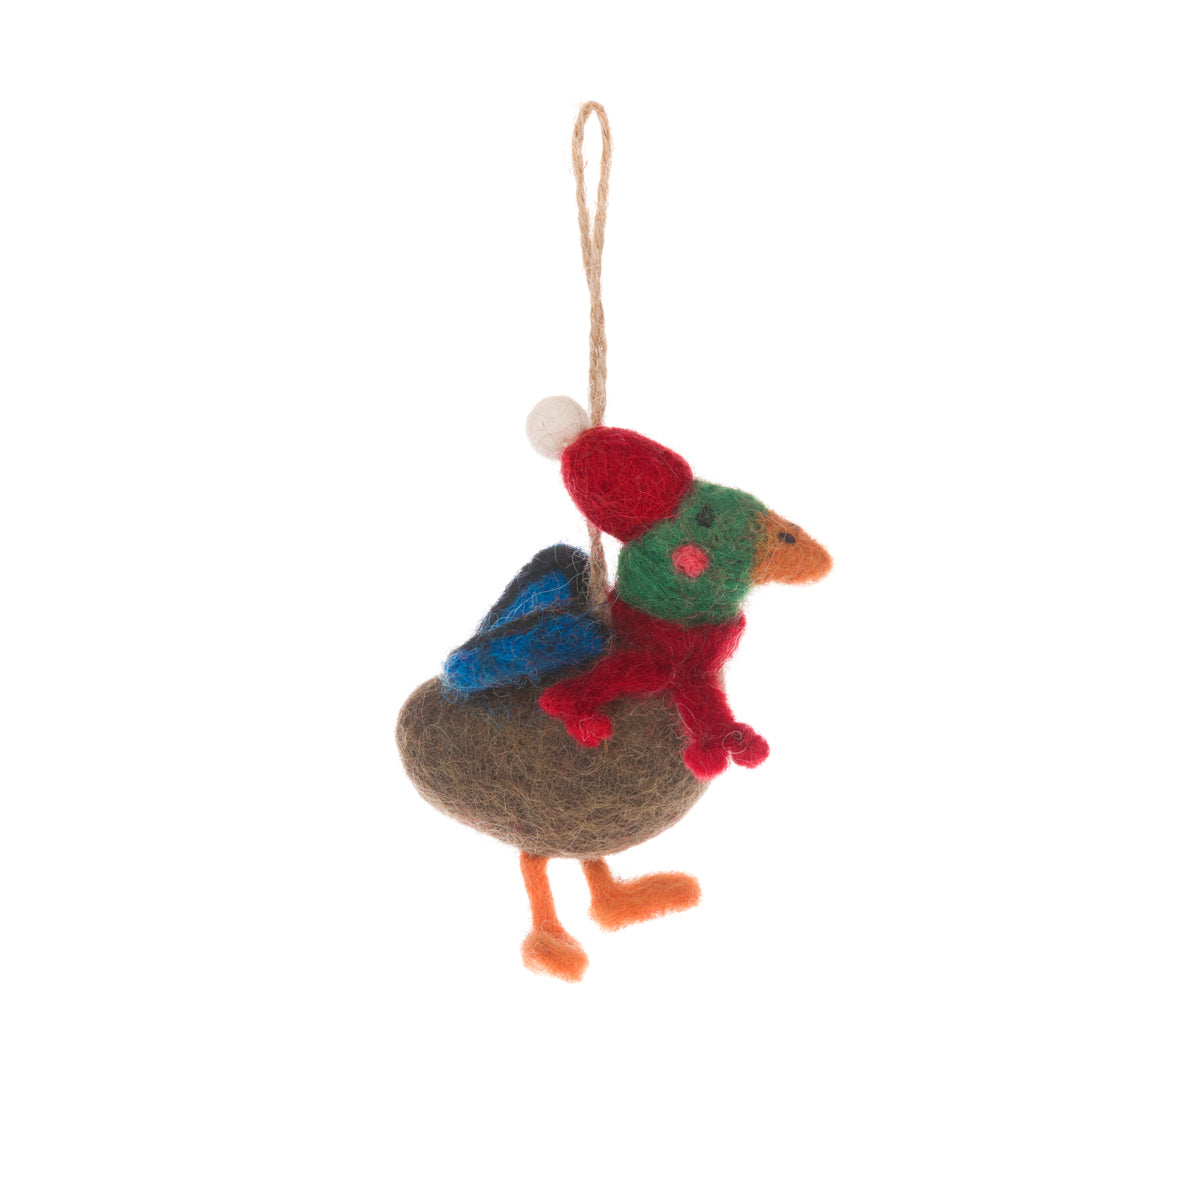 Ducks Felt Decoration by Sophie Allport